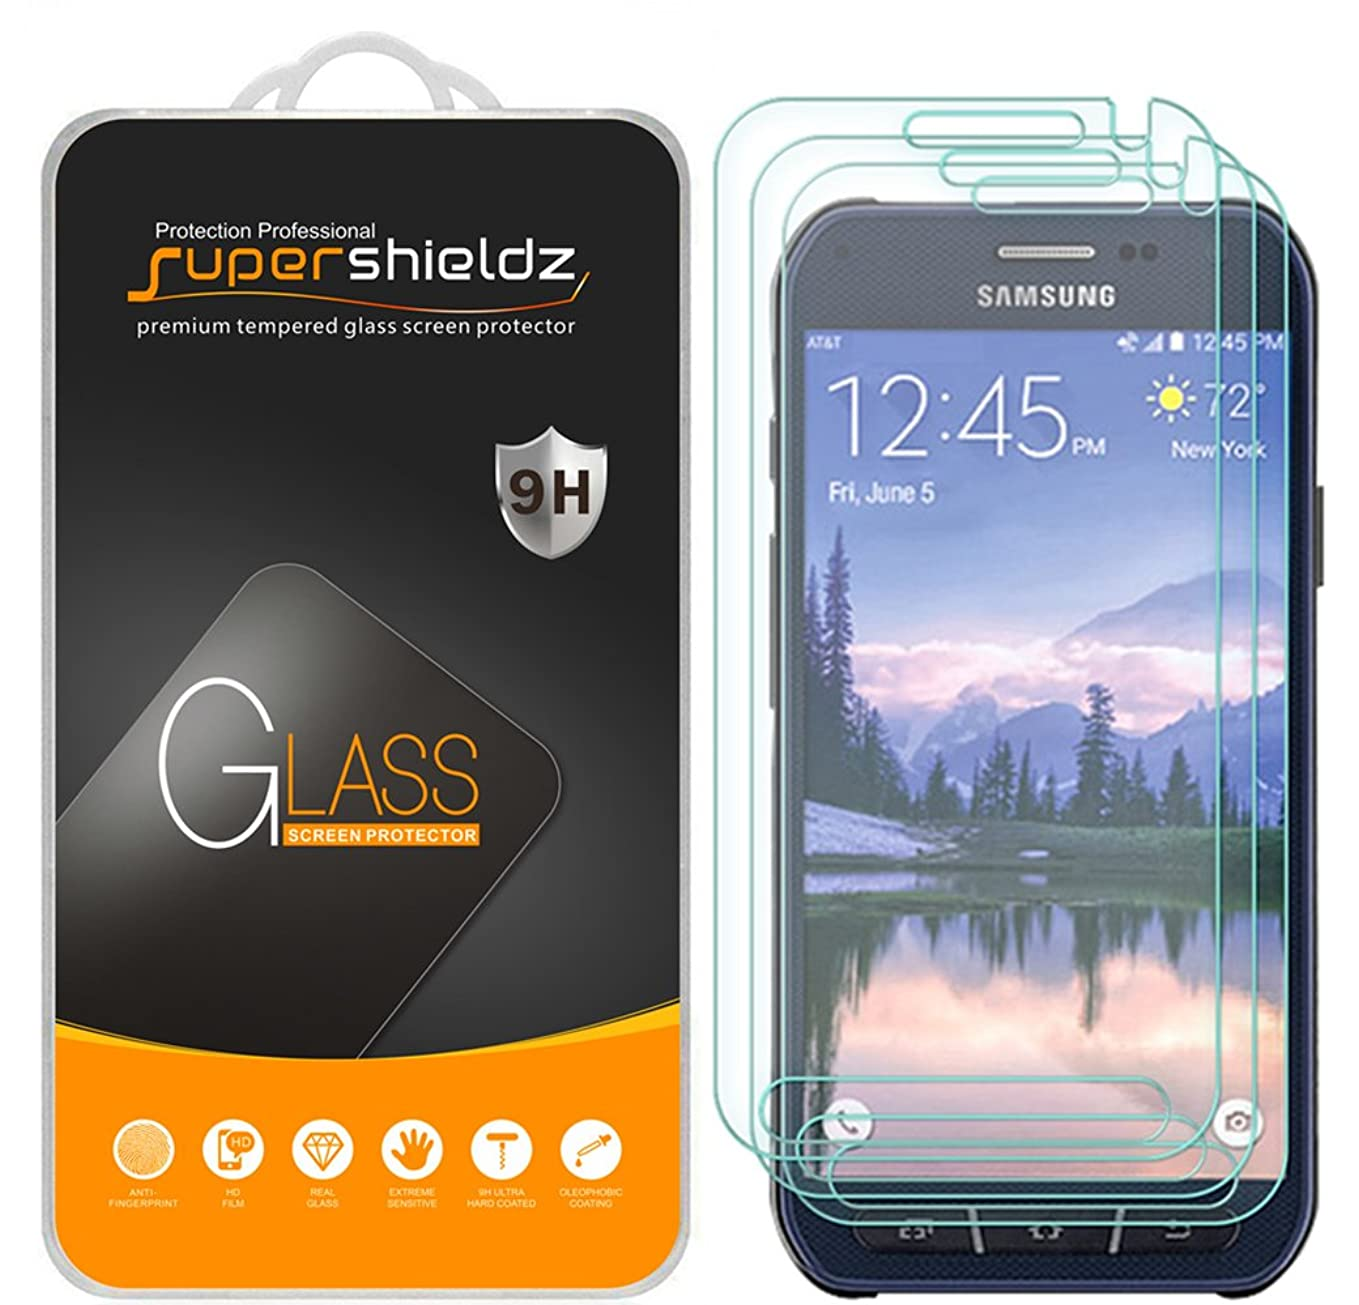 [3-Pack] Supershieldz for Samsung (Galaxy S6 Active) [Not Fit for Galaxy S6 Model] Tempered Glass Screen Protector, Anti-Scratch, Anti-Fingerprint, Bubble Free, Lifetime Replacement tj6400340232174